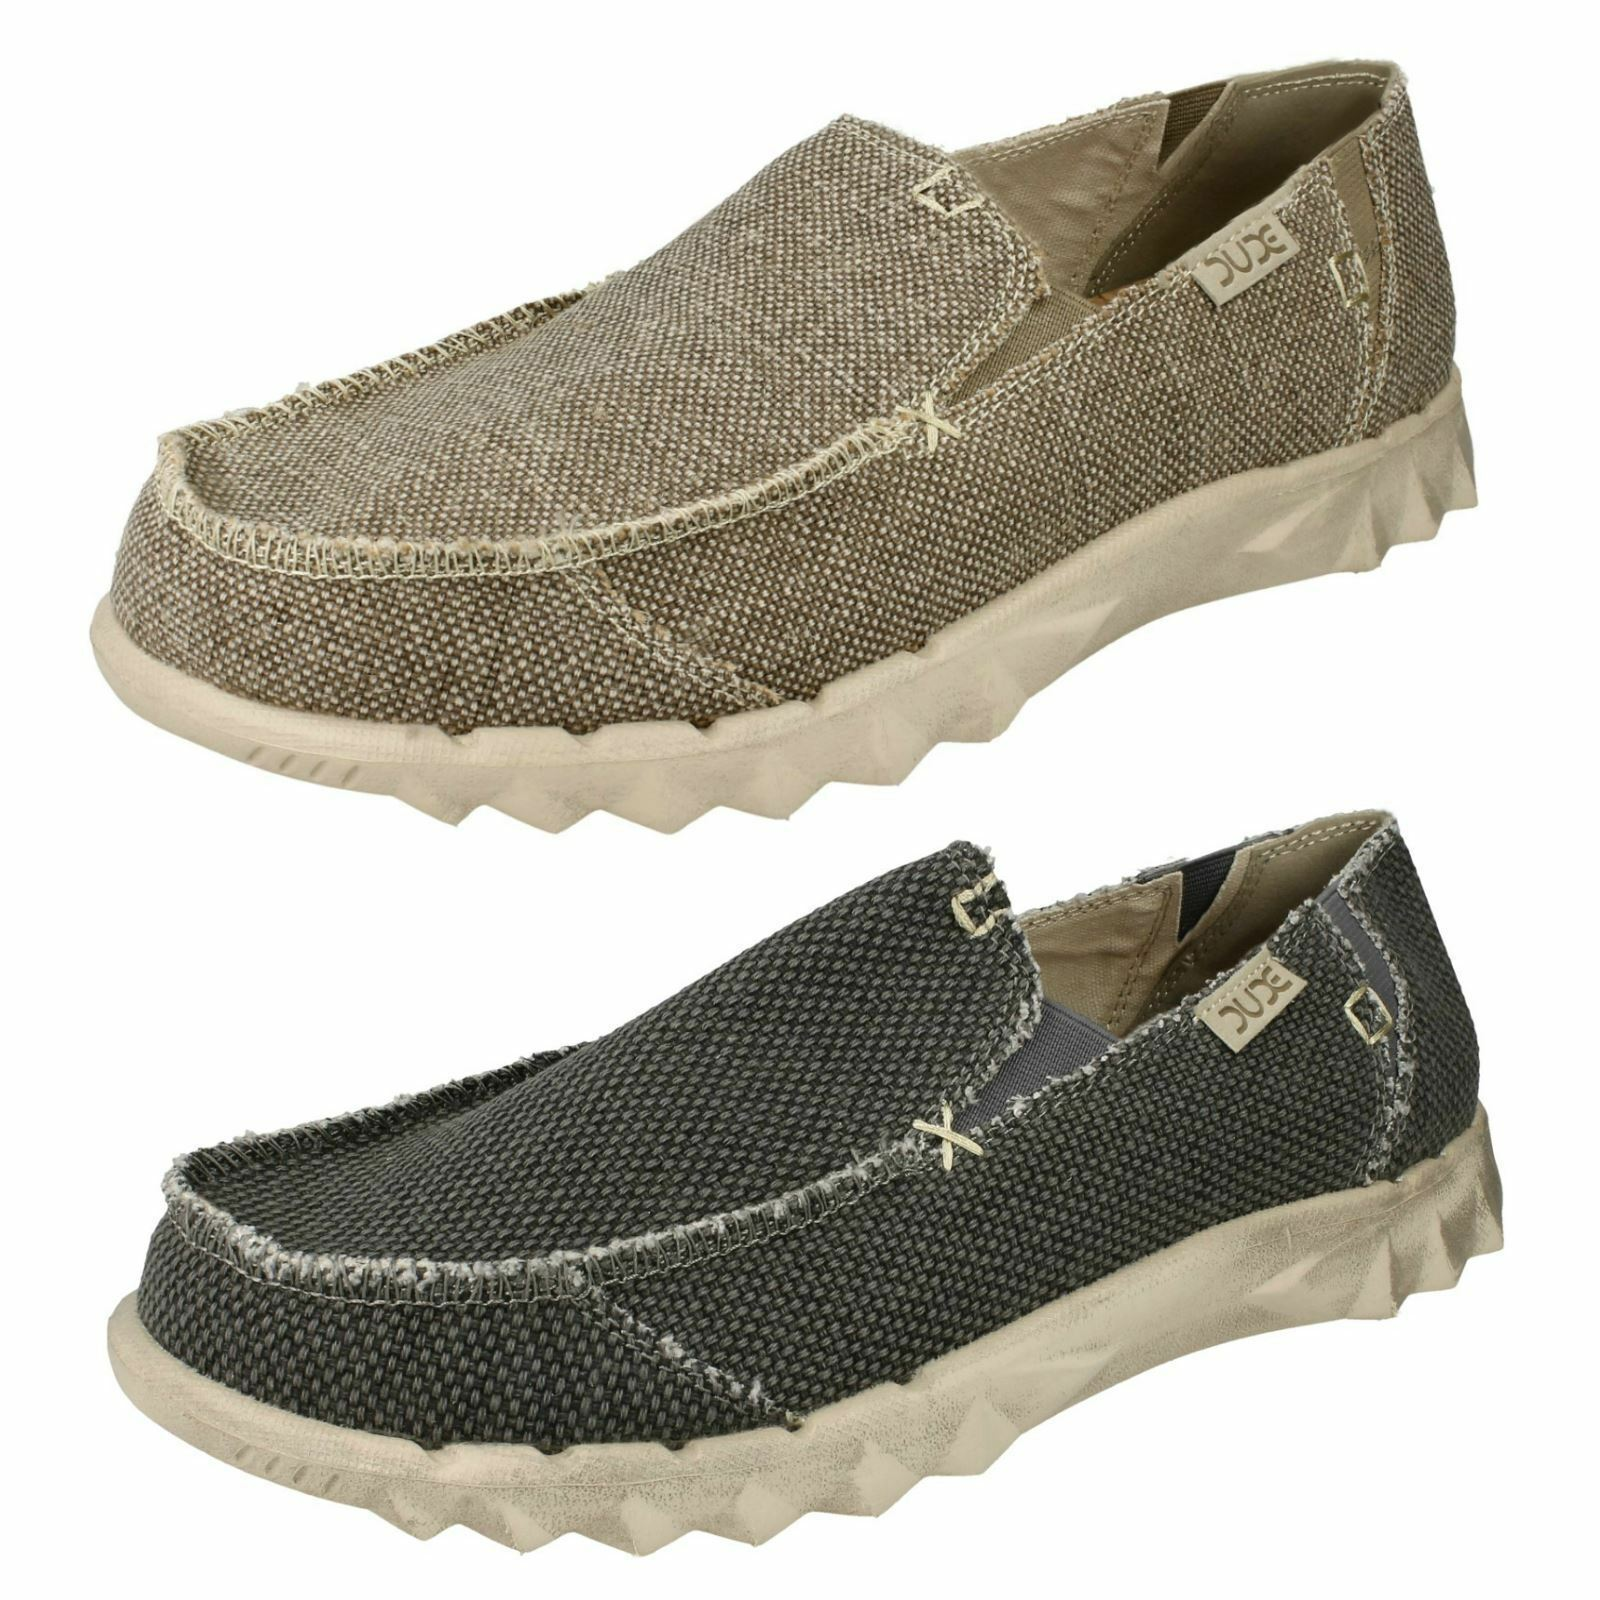 Mens Farty Braided Slip On Canvas Shoes by Hey Dude £45.00